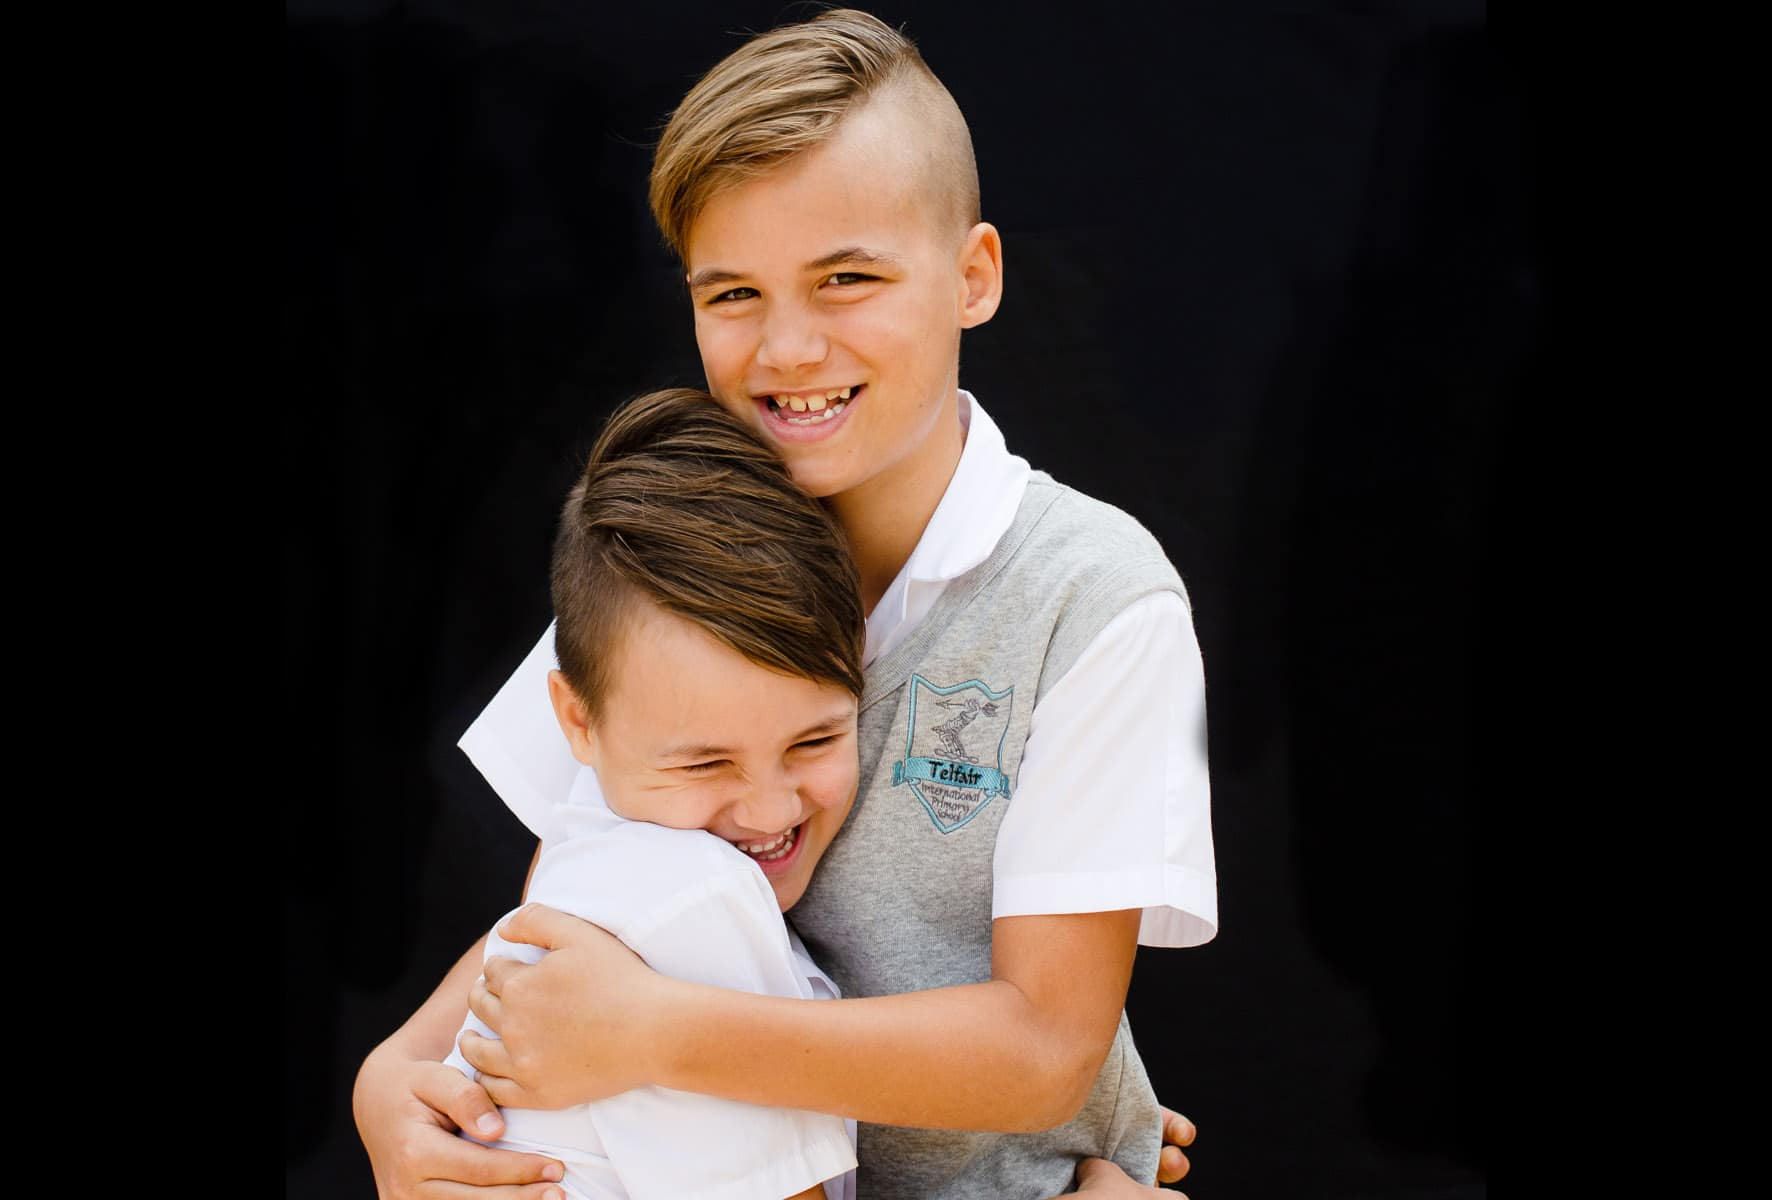 school sibling photo of brothers in their uniform